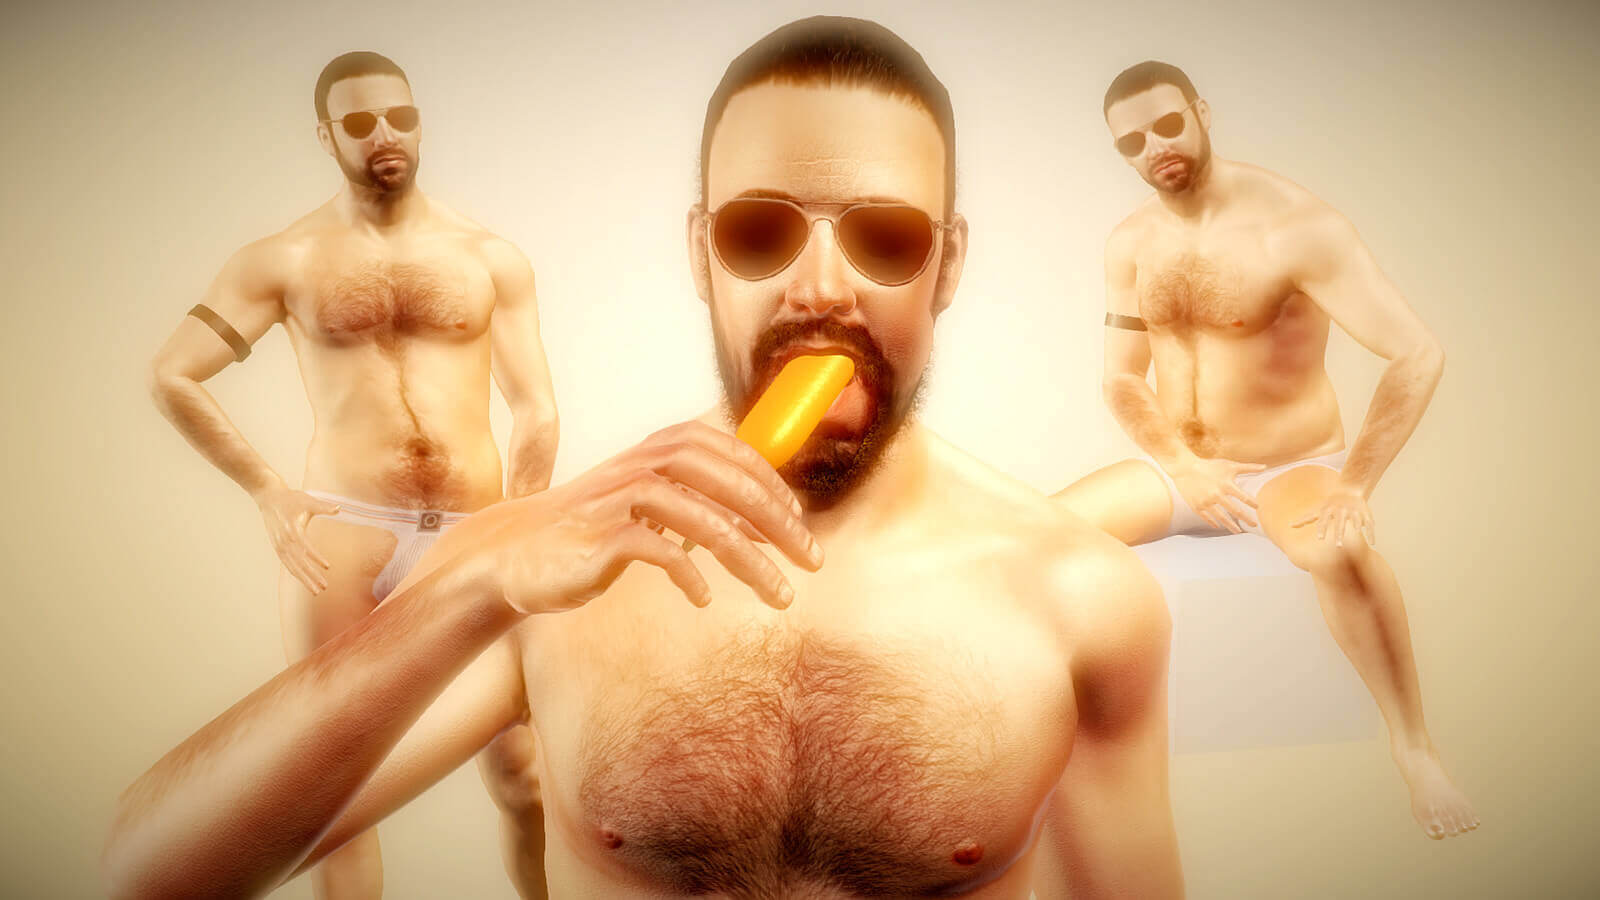 Gay sex game Radiator 2 lets players explore BDSM and other kinks in a adult virtual world.